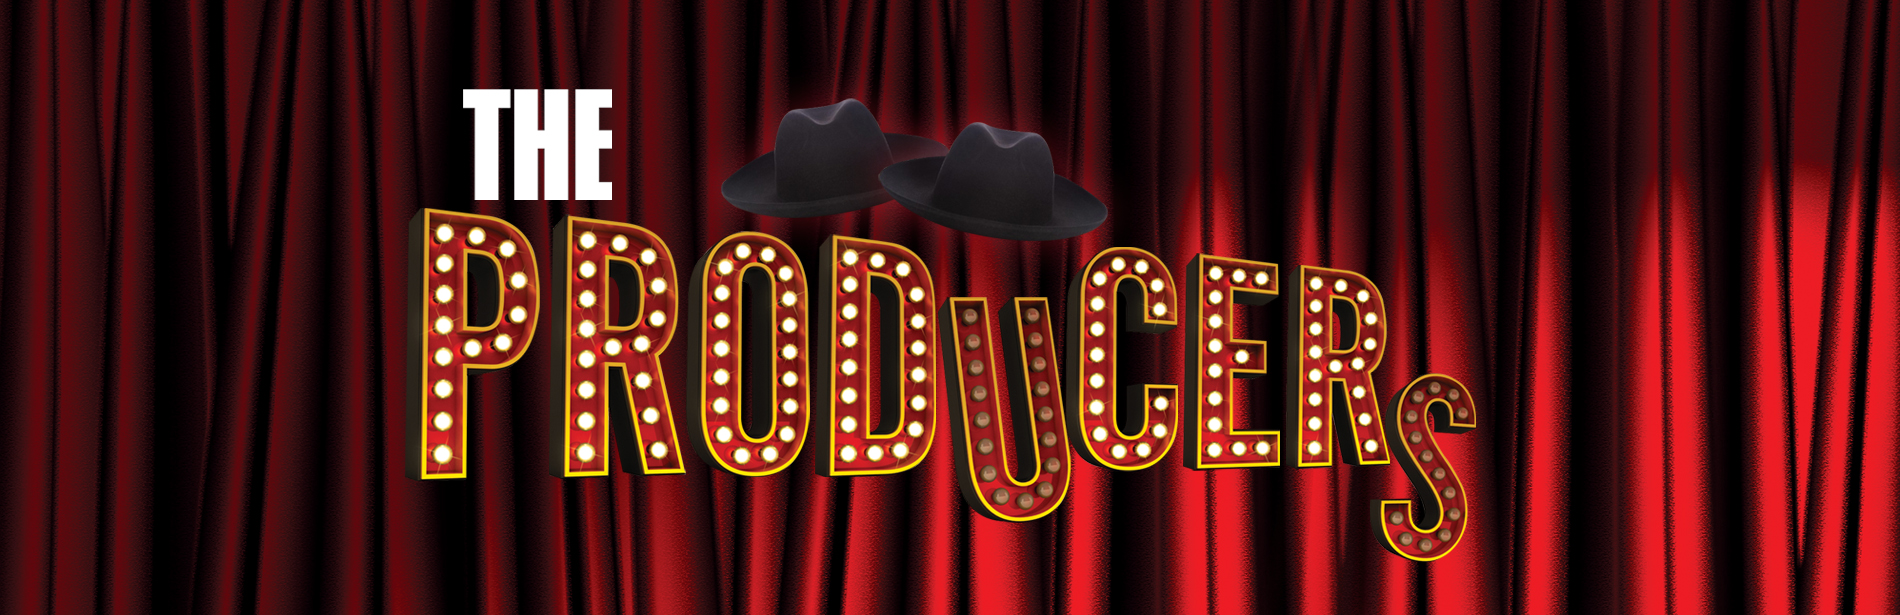 Broadway Touring Production Companies